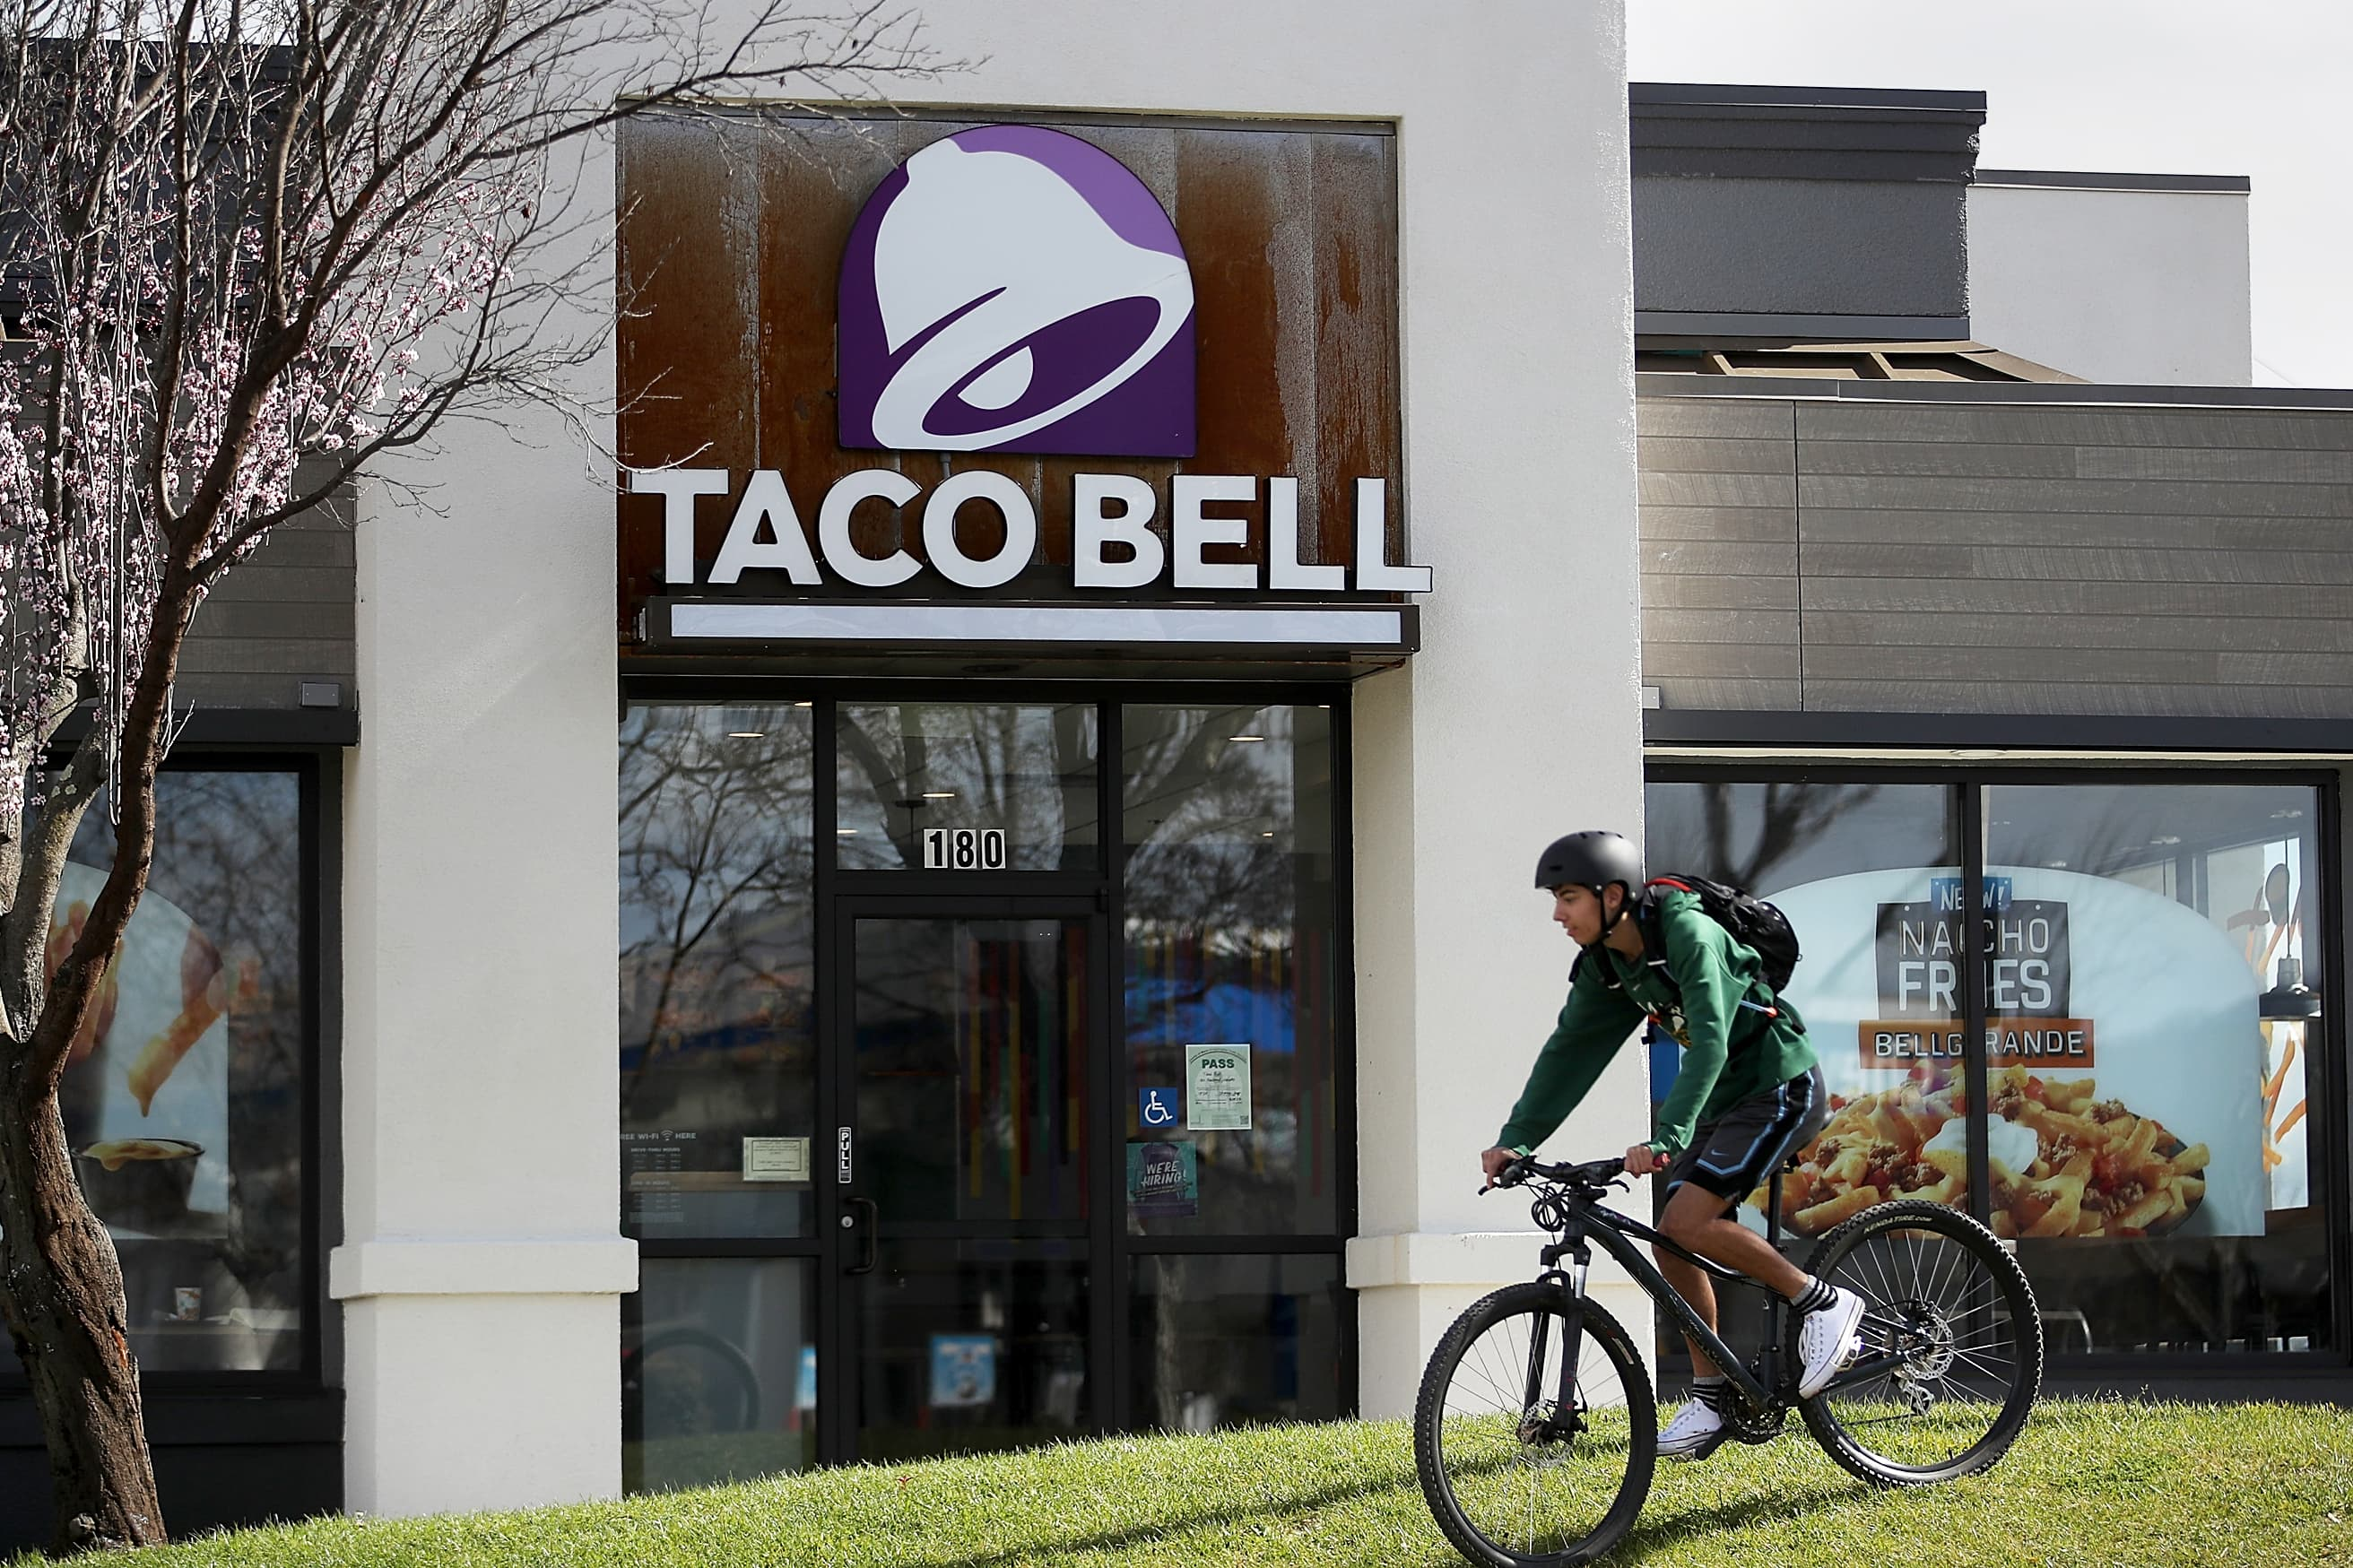 Taco Bell recalls 2.3 million pounds of seasoned beef after reports of metal shavings